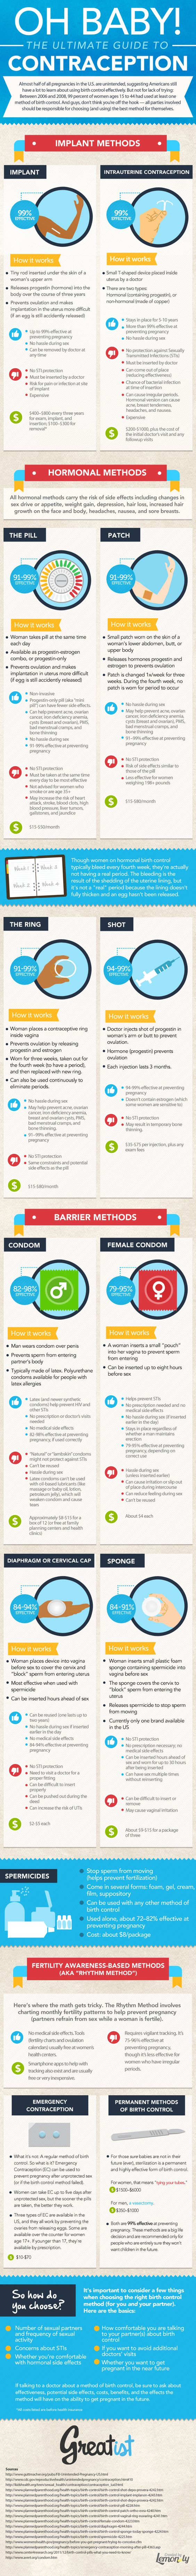 ultimate guide of contraception